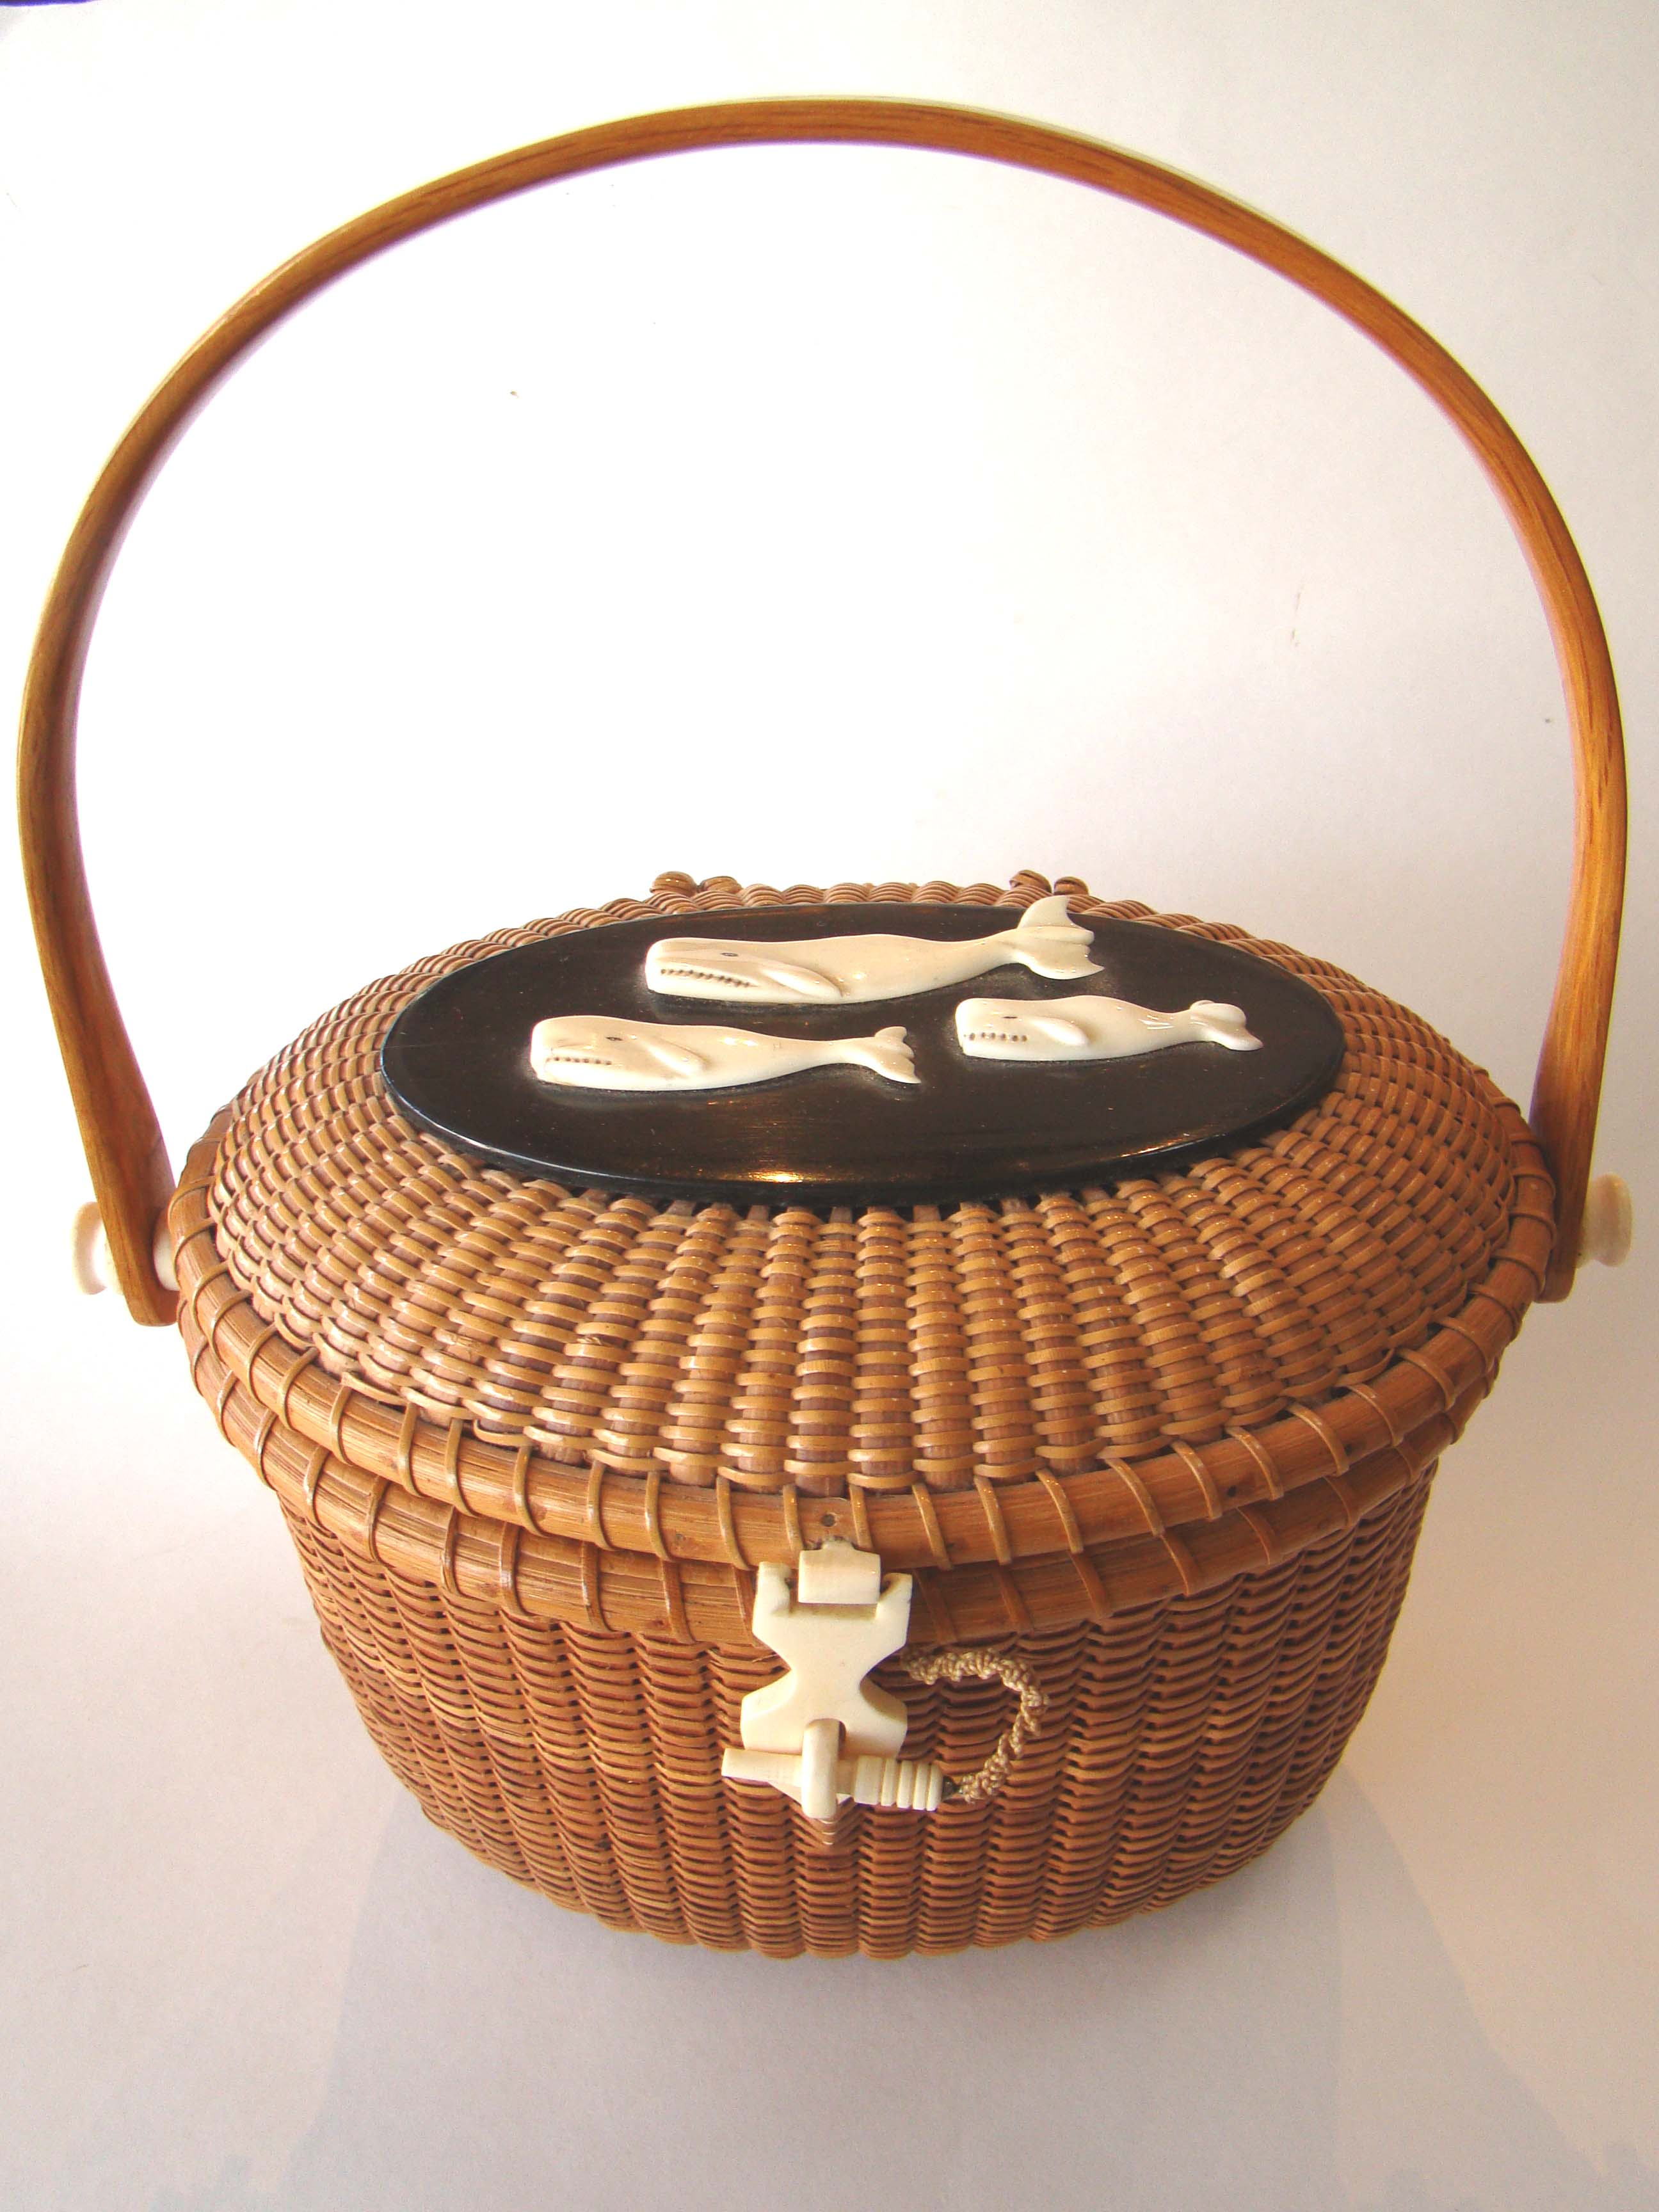 click to view detailed description of An exceptionally fine and important Nantucket covered basket purse made by the iconic basket maker Gladys Ellis circa 1970.